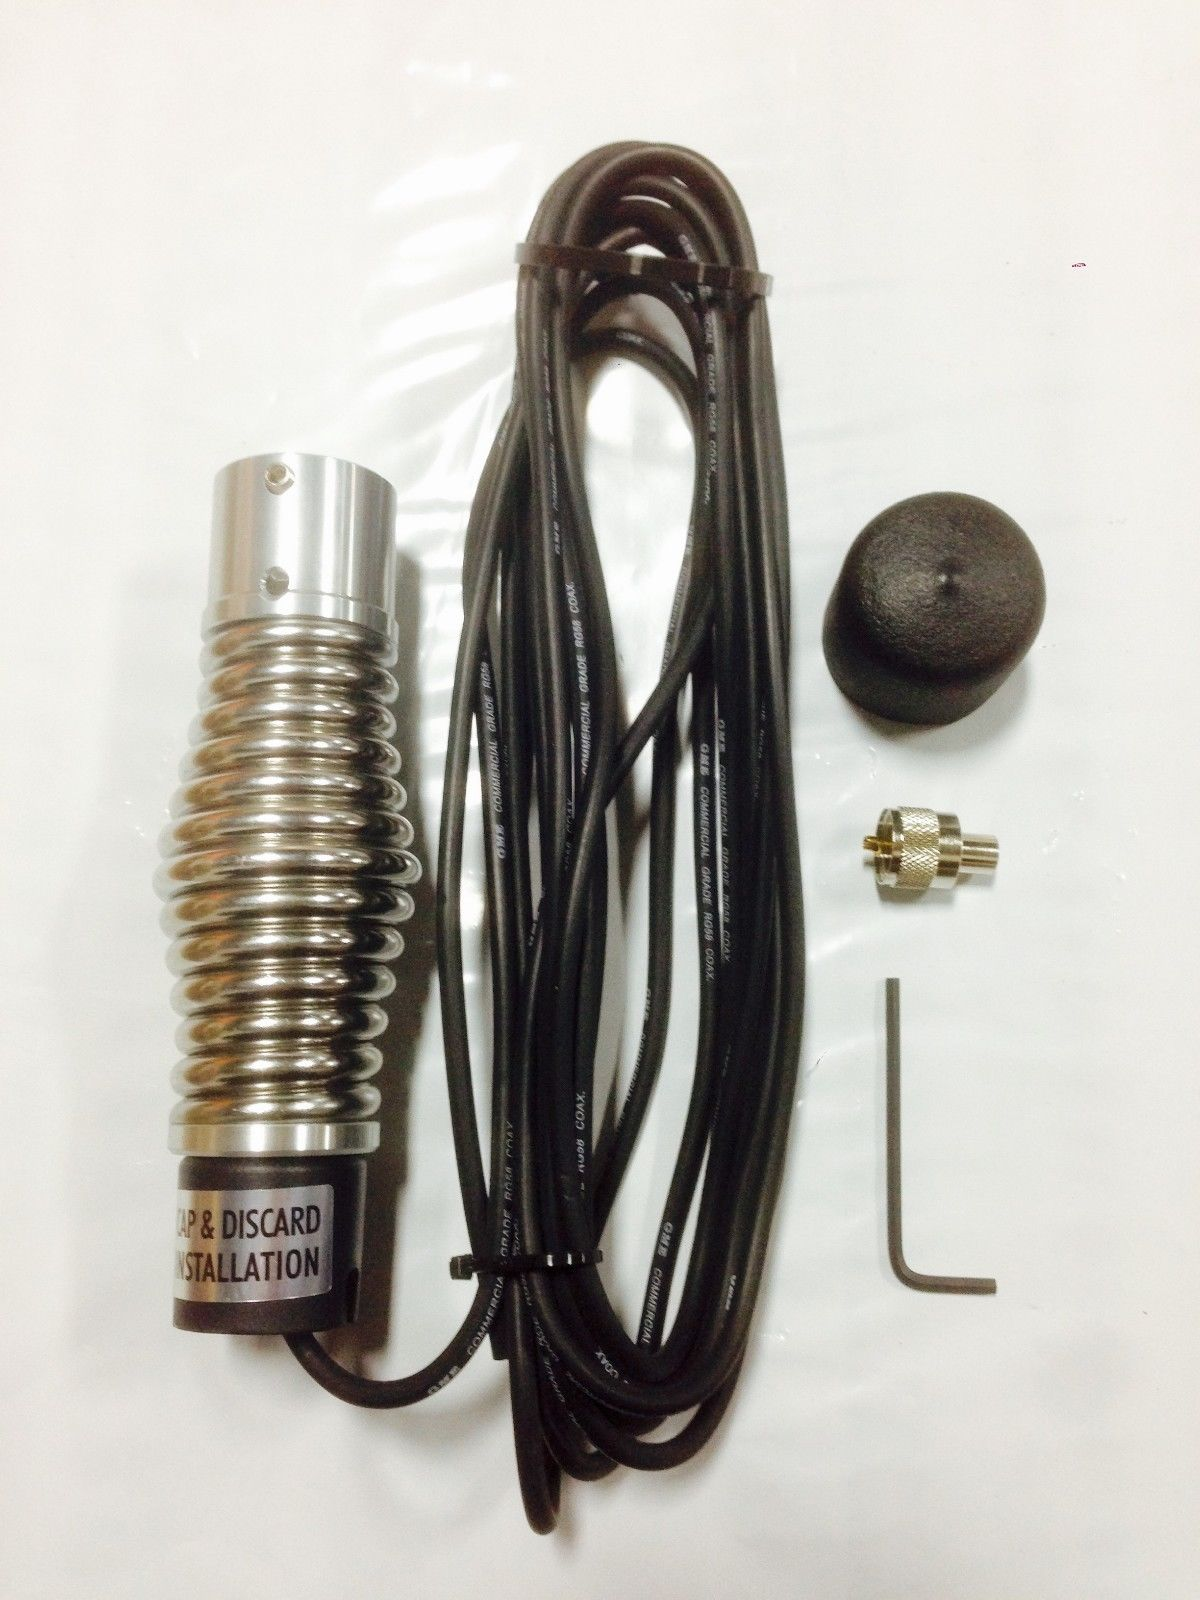 GME AS004 HEAVY DUTY BARREL SPRING CABLE AND CONNECTOR KIT